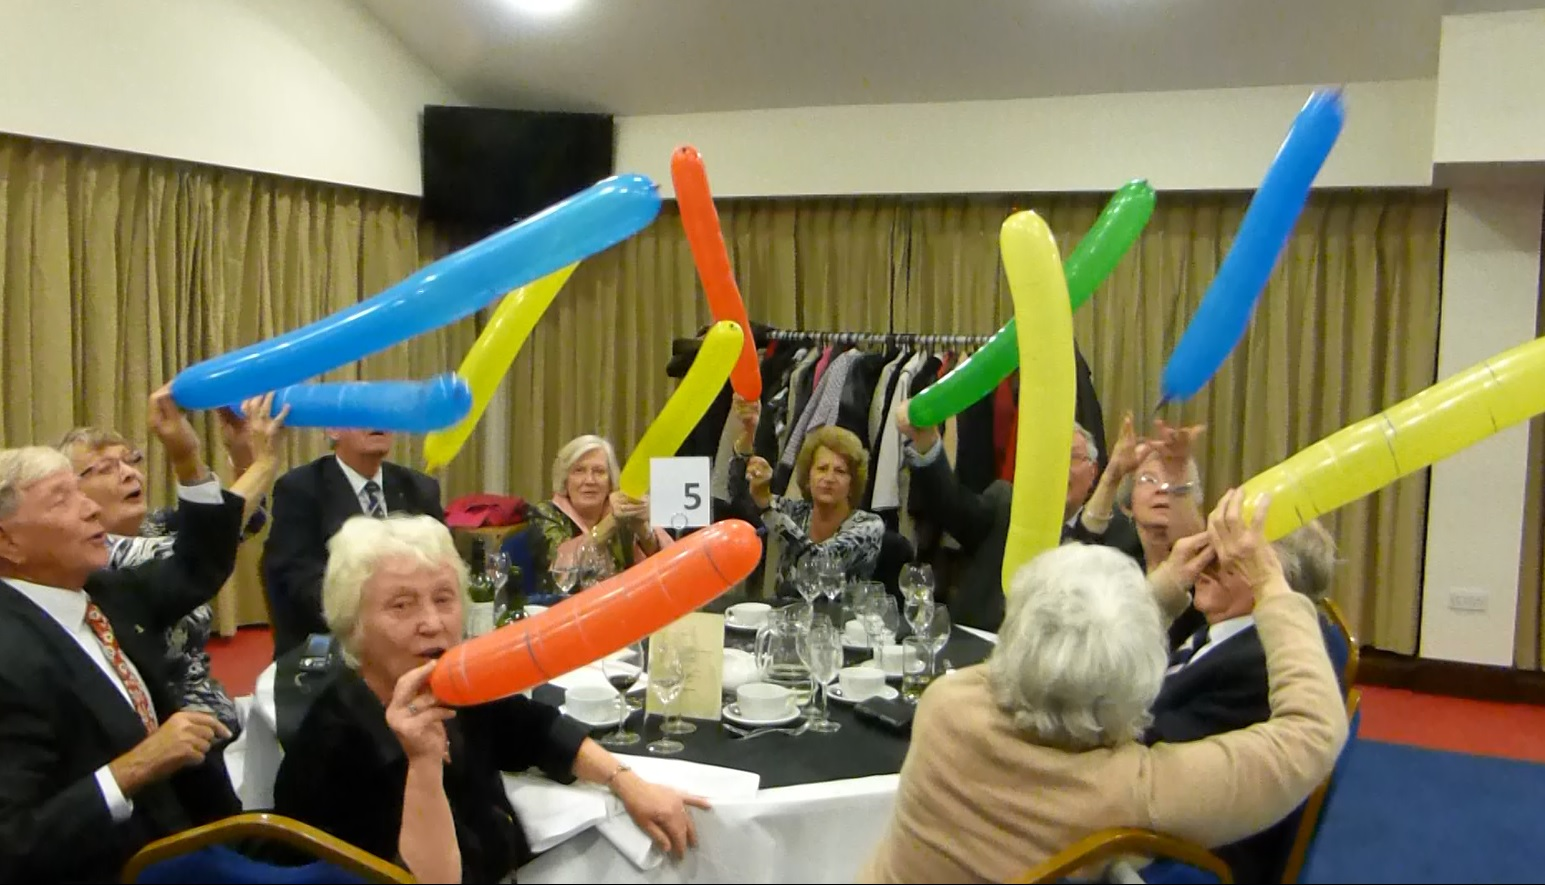 Table 5 launches flying balloons